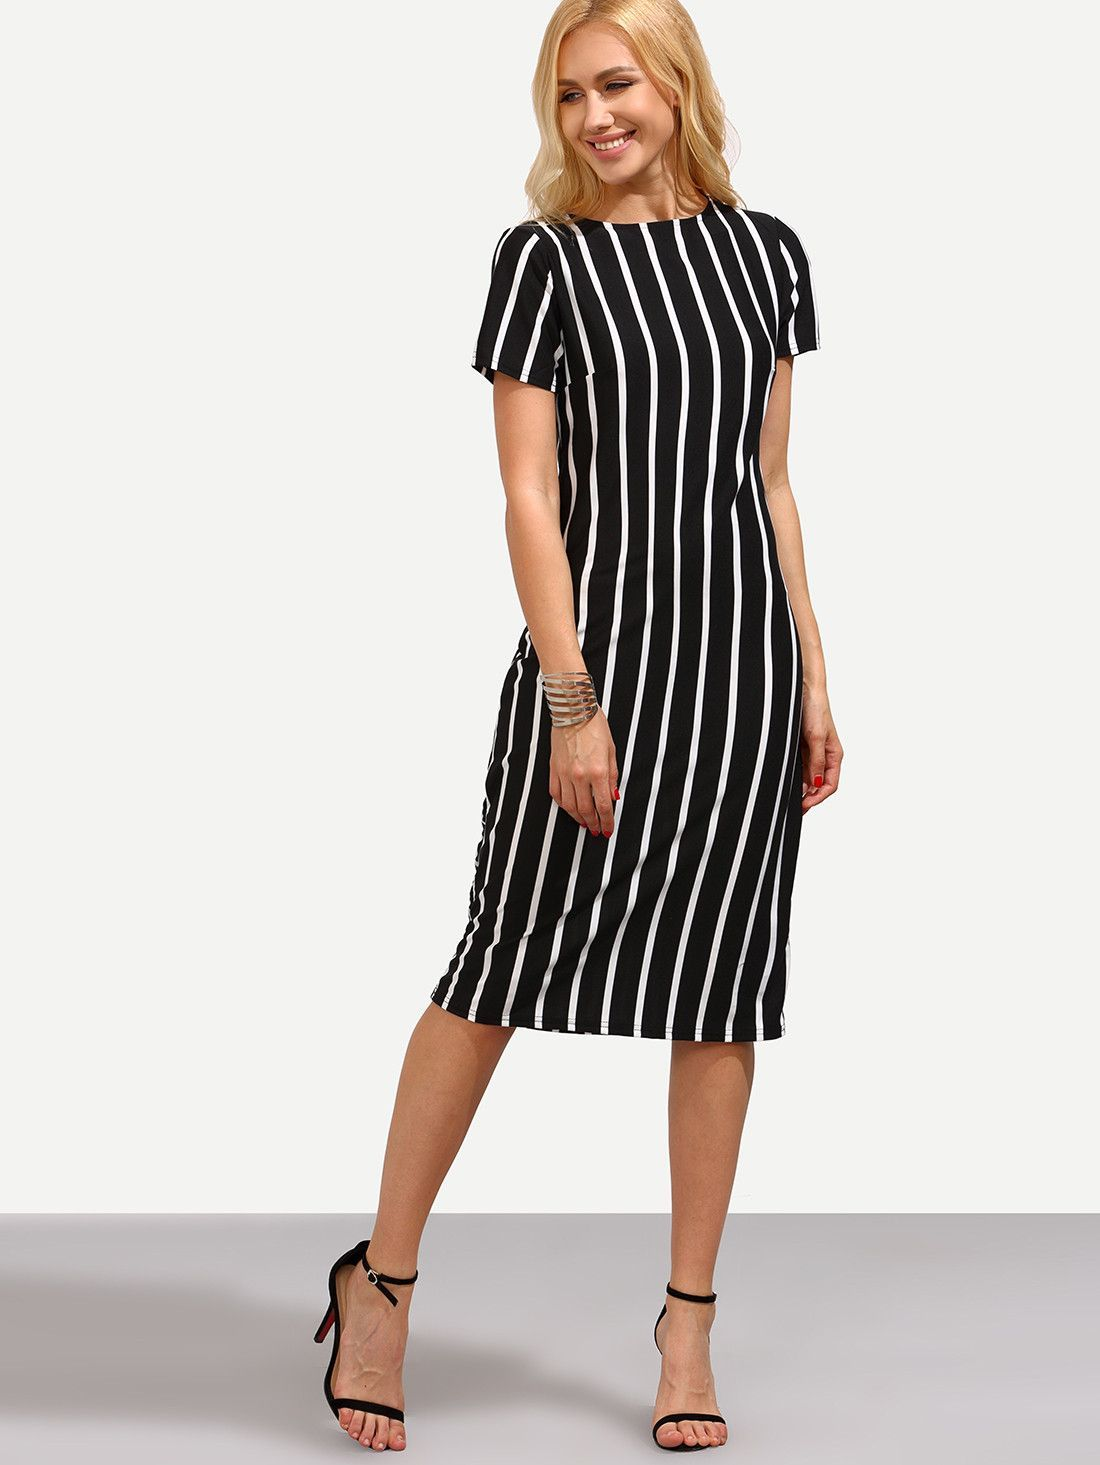 87d89bfec4a5 Fabric: Fabric is very stretchy Season: Summer Type: Pencil Pattern Type:  Striped Sleeve Length: Short Sleeve Color: Black Dresses Length: Midi  Style: Work ...